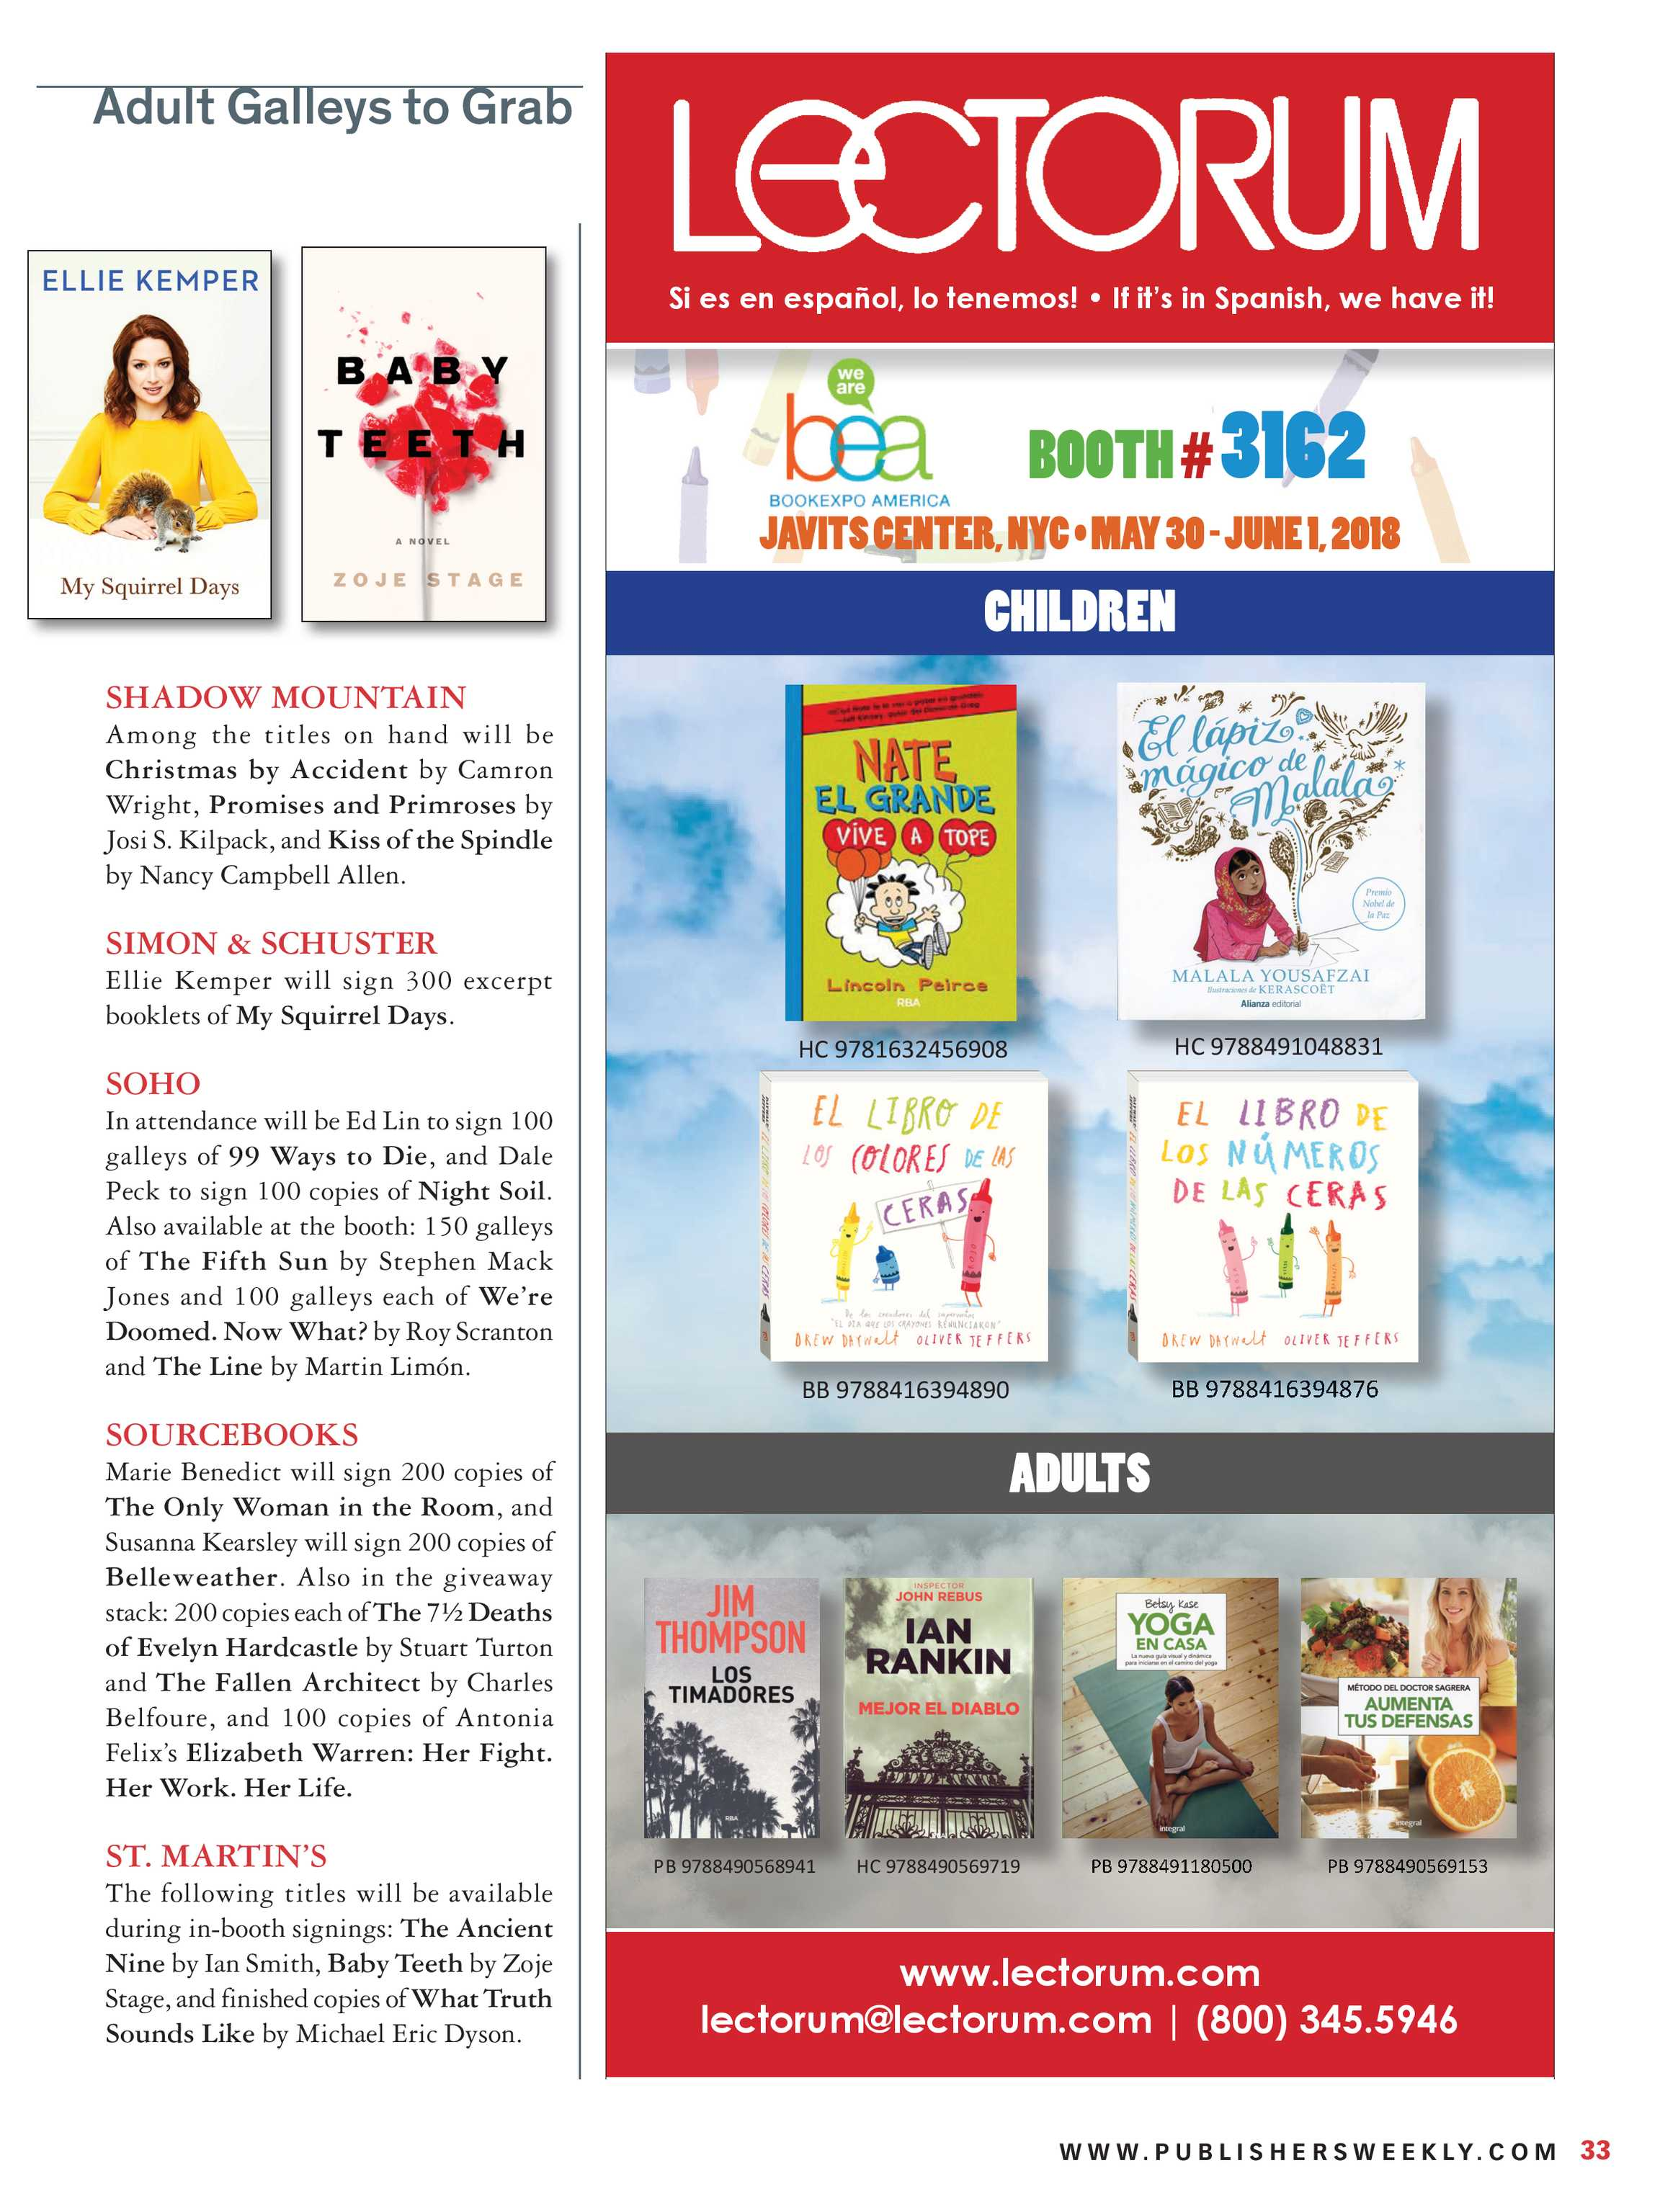 Publishers Weekly - BookExpo Preview 2018 - page 33